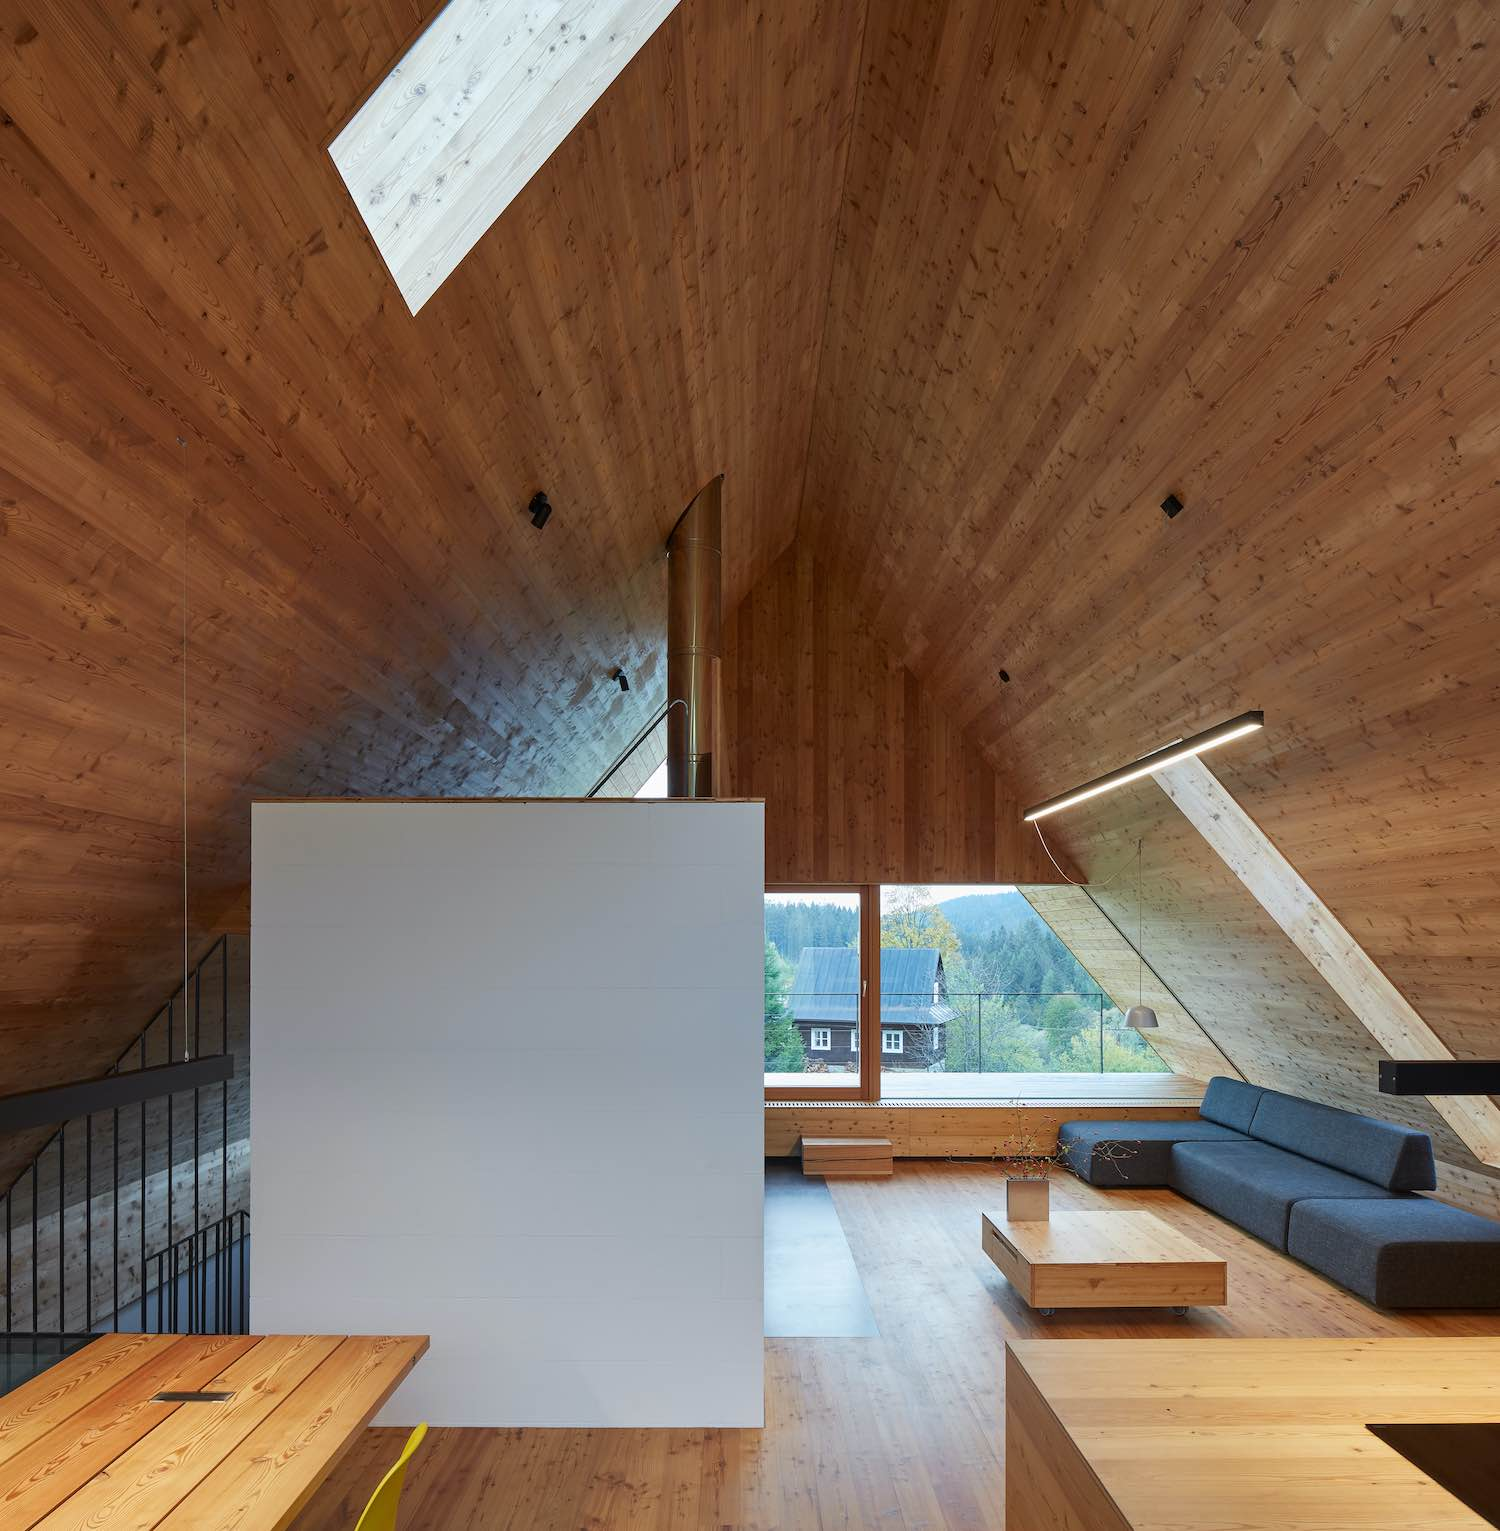 interior of the cabin made of wood